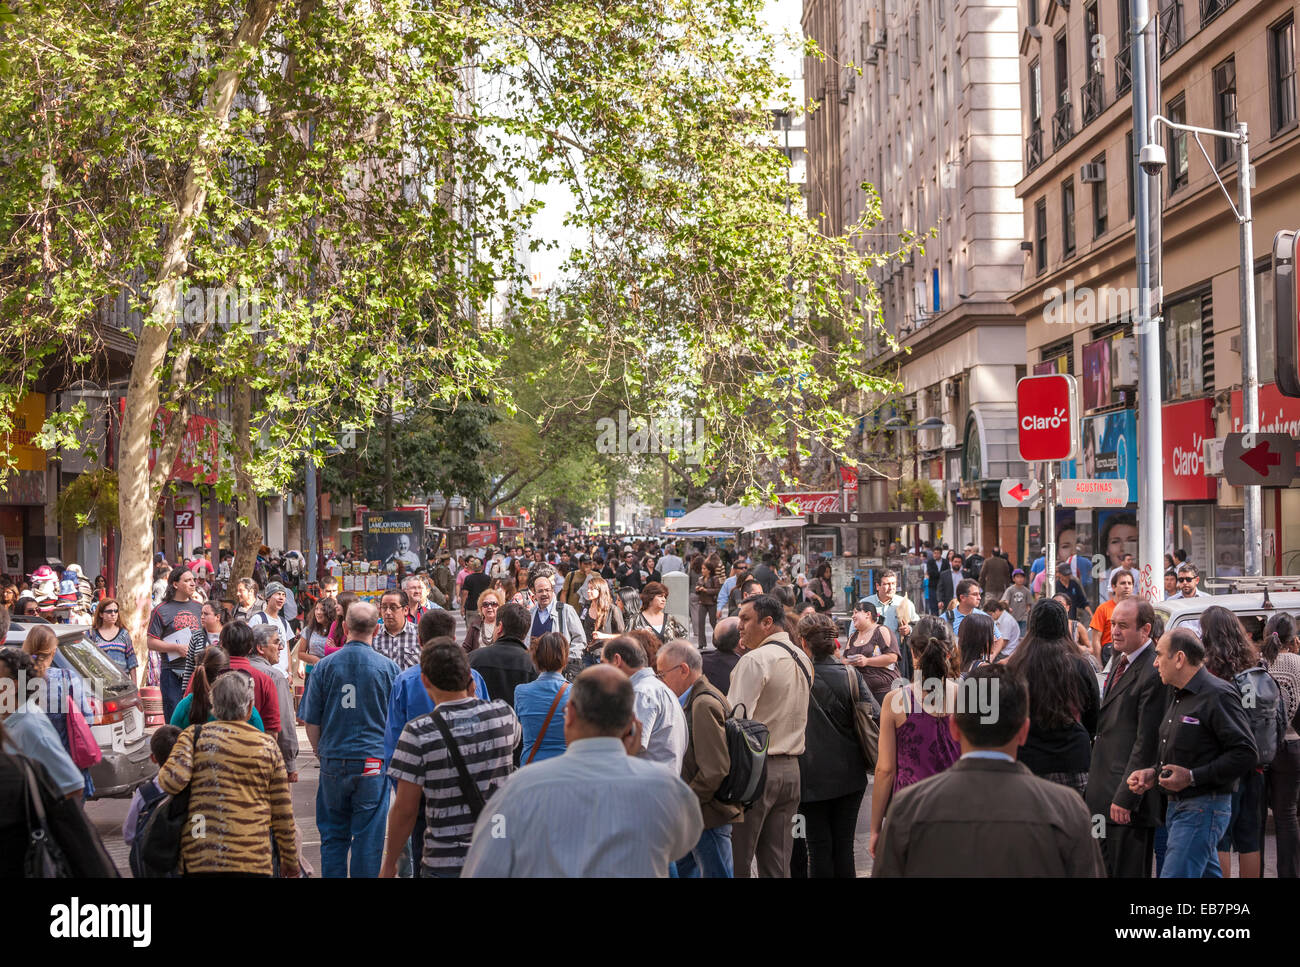 https://c7.alamy.com/comp/EB7P9A/santiago-chile-paseo-ahumada-crowds-of-people-shoppers-walking-talking-EB7P9A.jpg